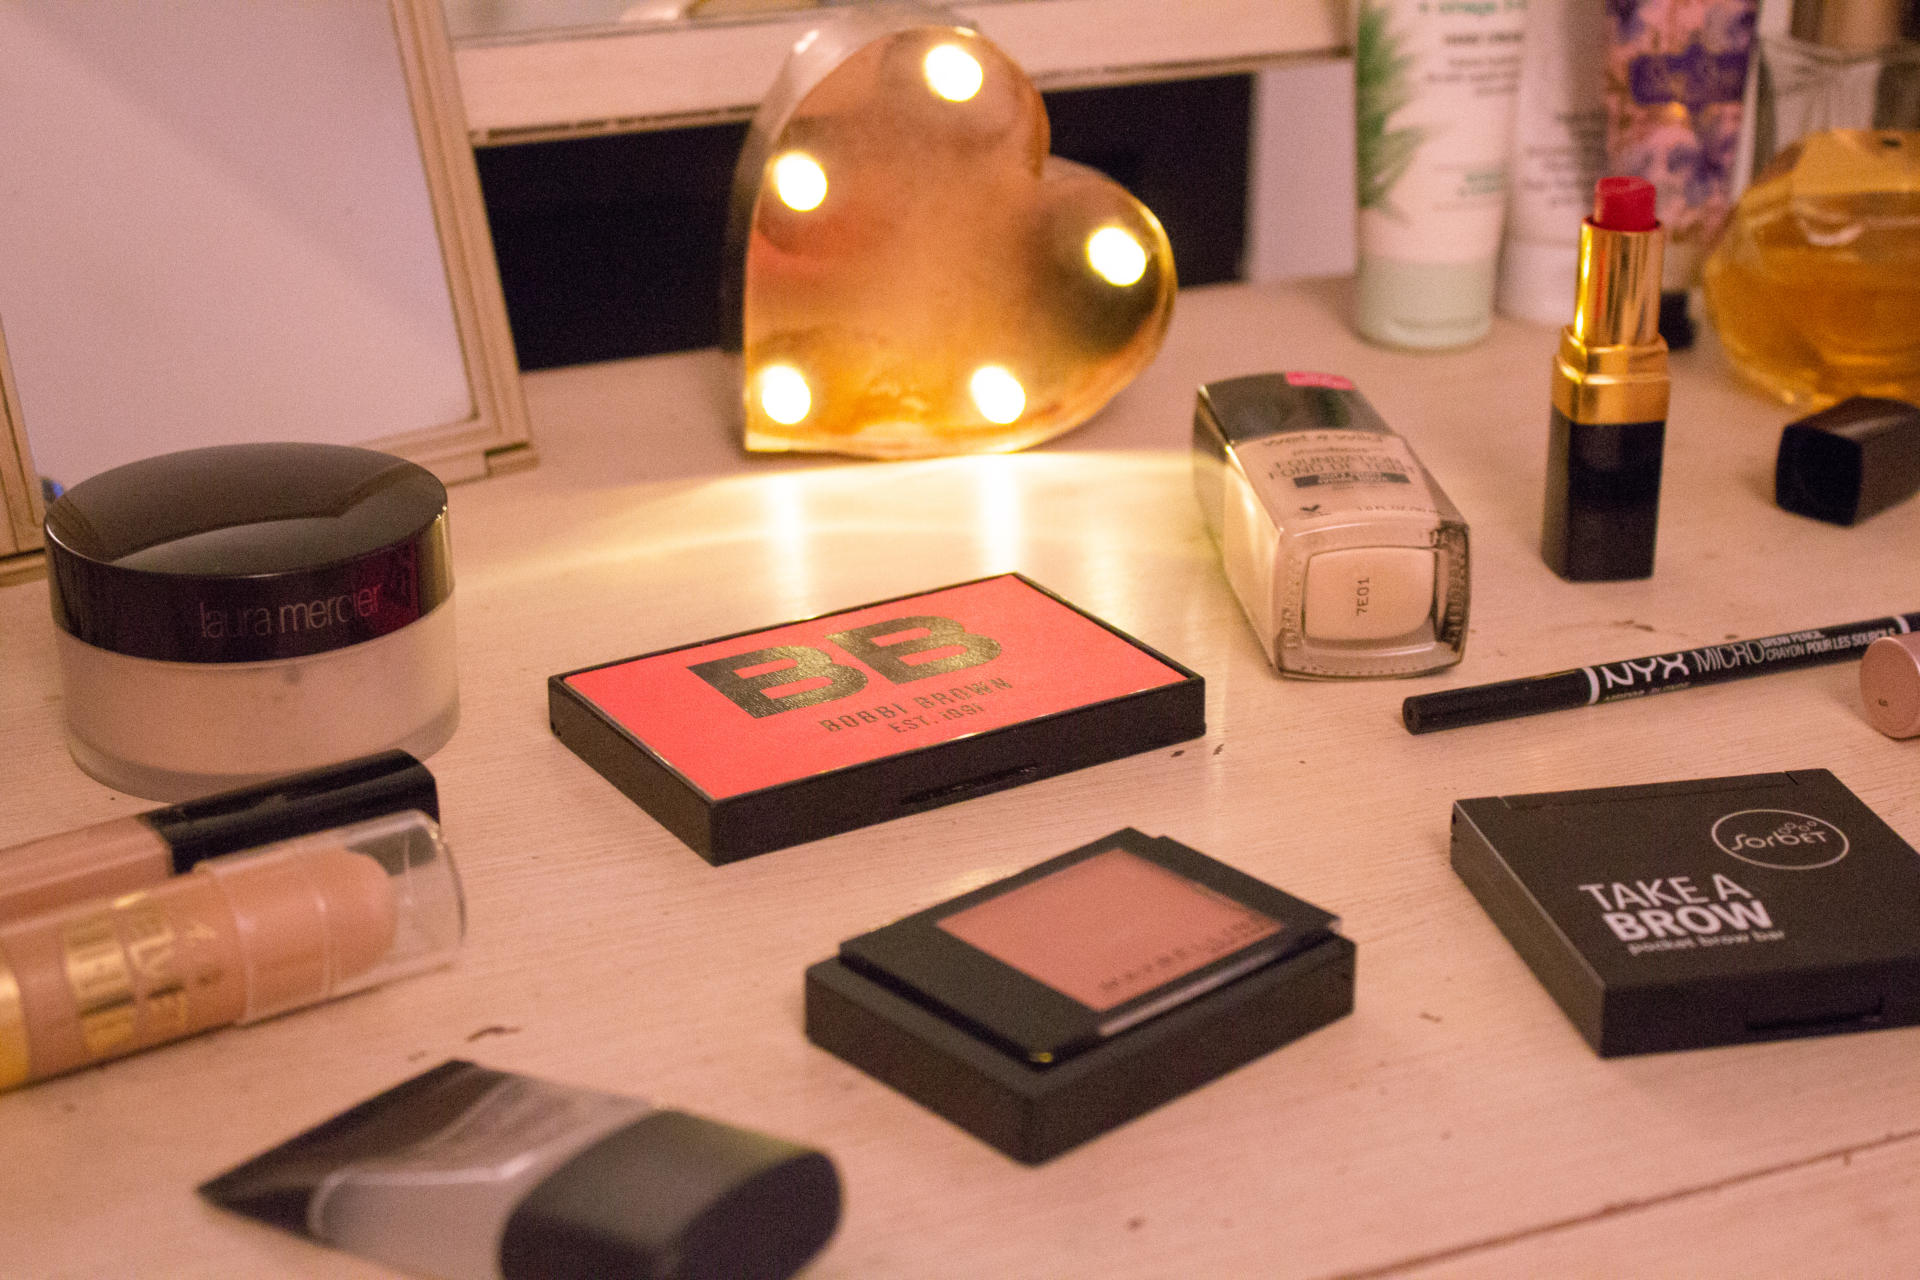 make-up products lying on dressing table